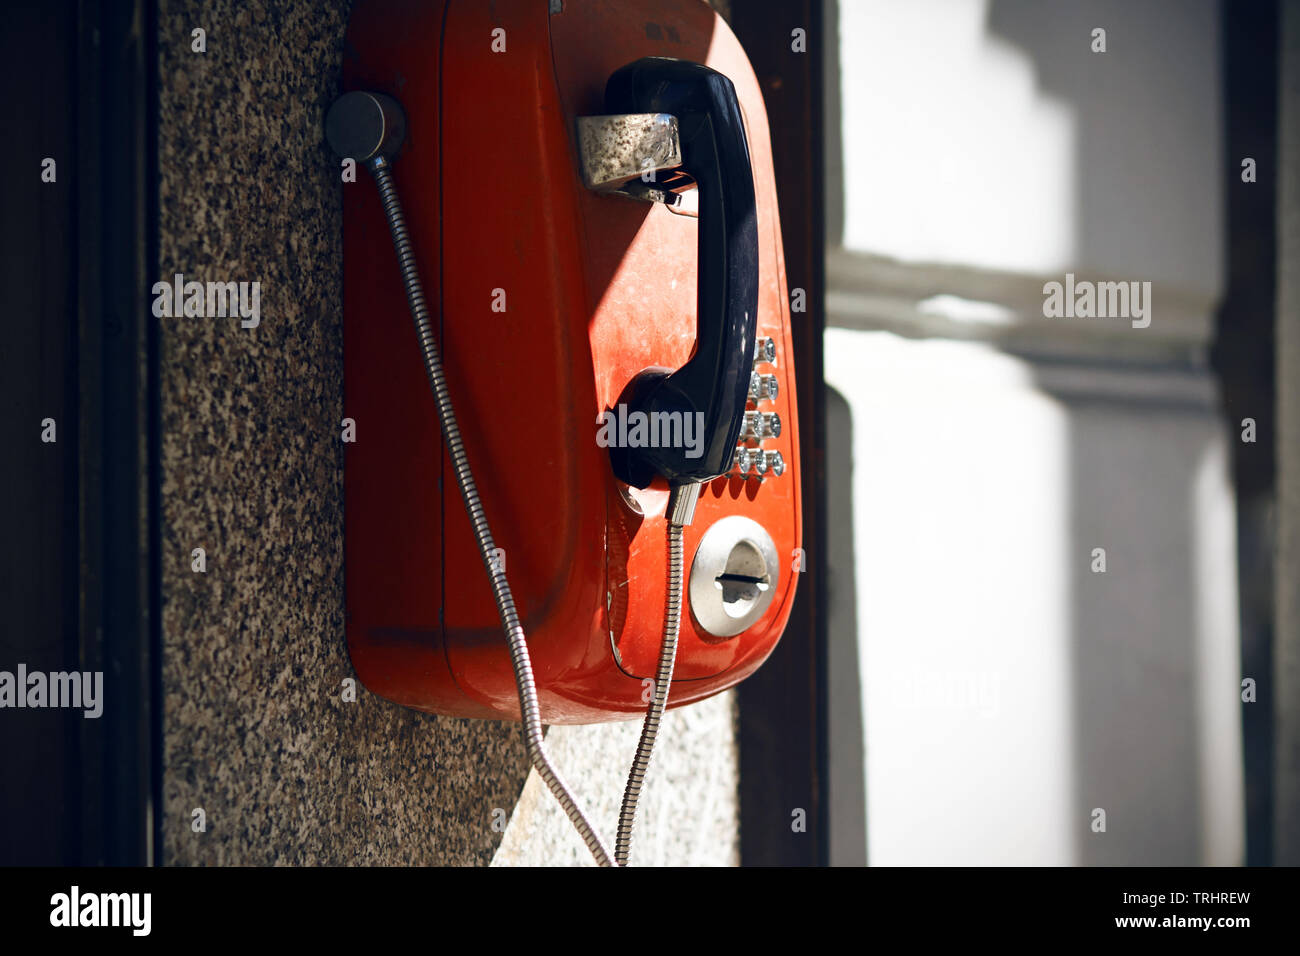 Acceptor Stock Photos & Acceptor Stock Images - Alamy